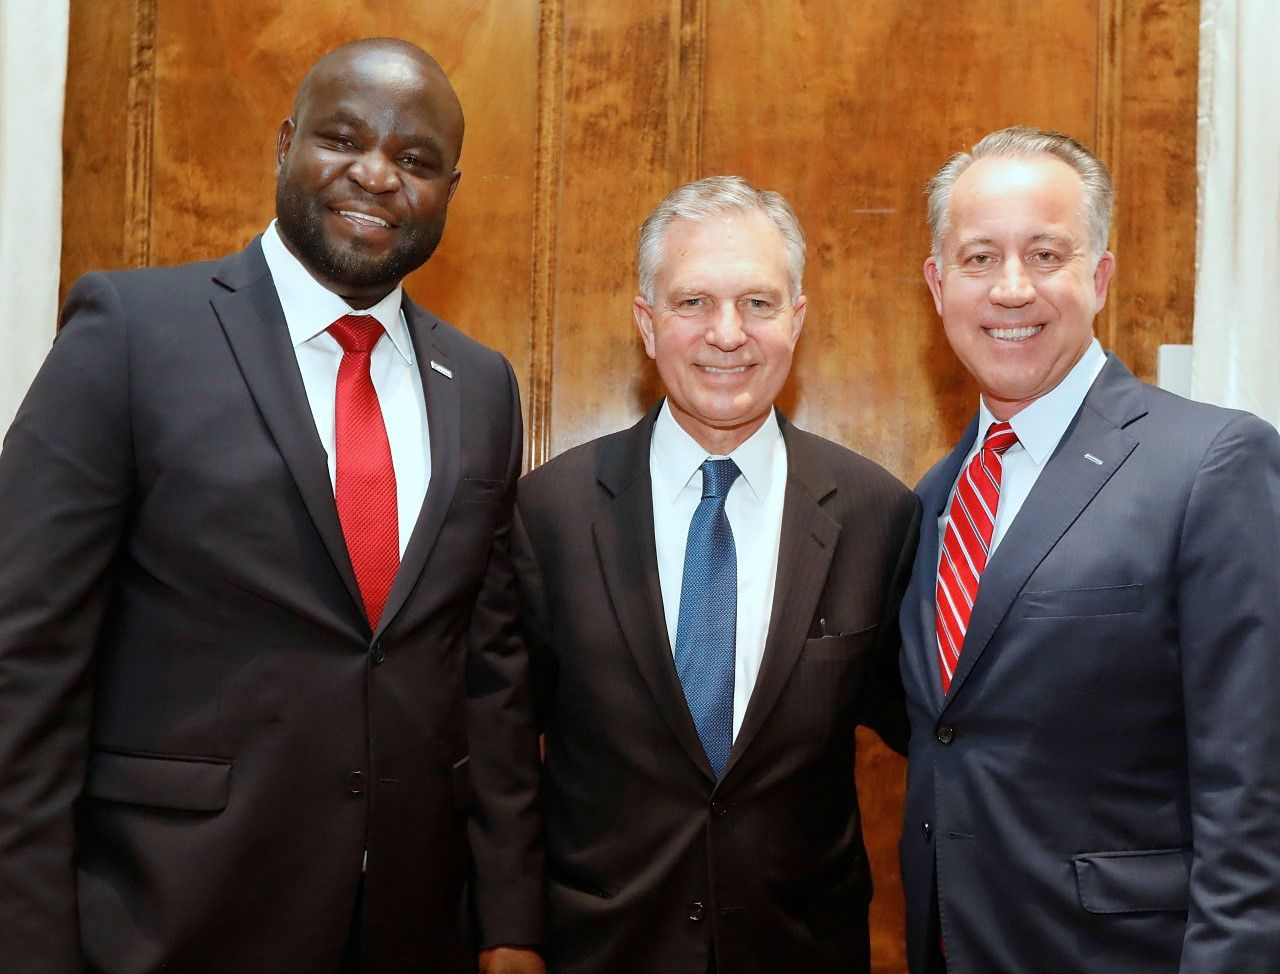 From left: John Olajide, 2020 chairman of the Dallas Regional Chamber, Dale Petroskey, chamber CEO, and Toyota executive Chris Nielsen, immediate past chamber chair, at the organization's annual meeting in January.